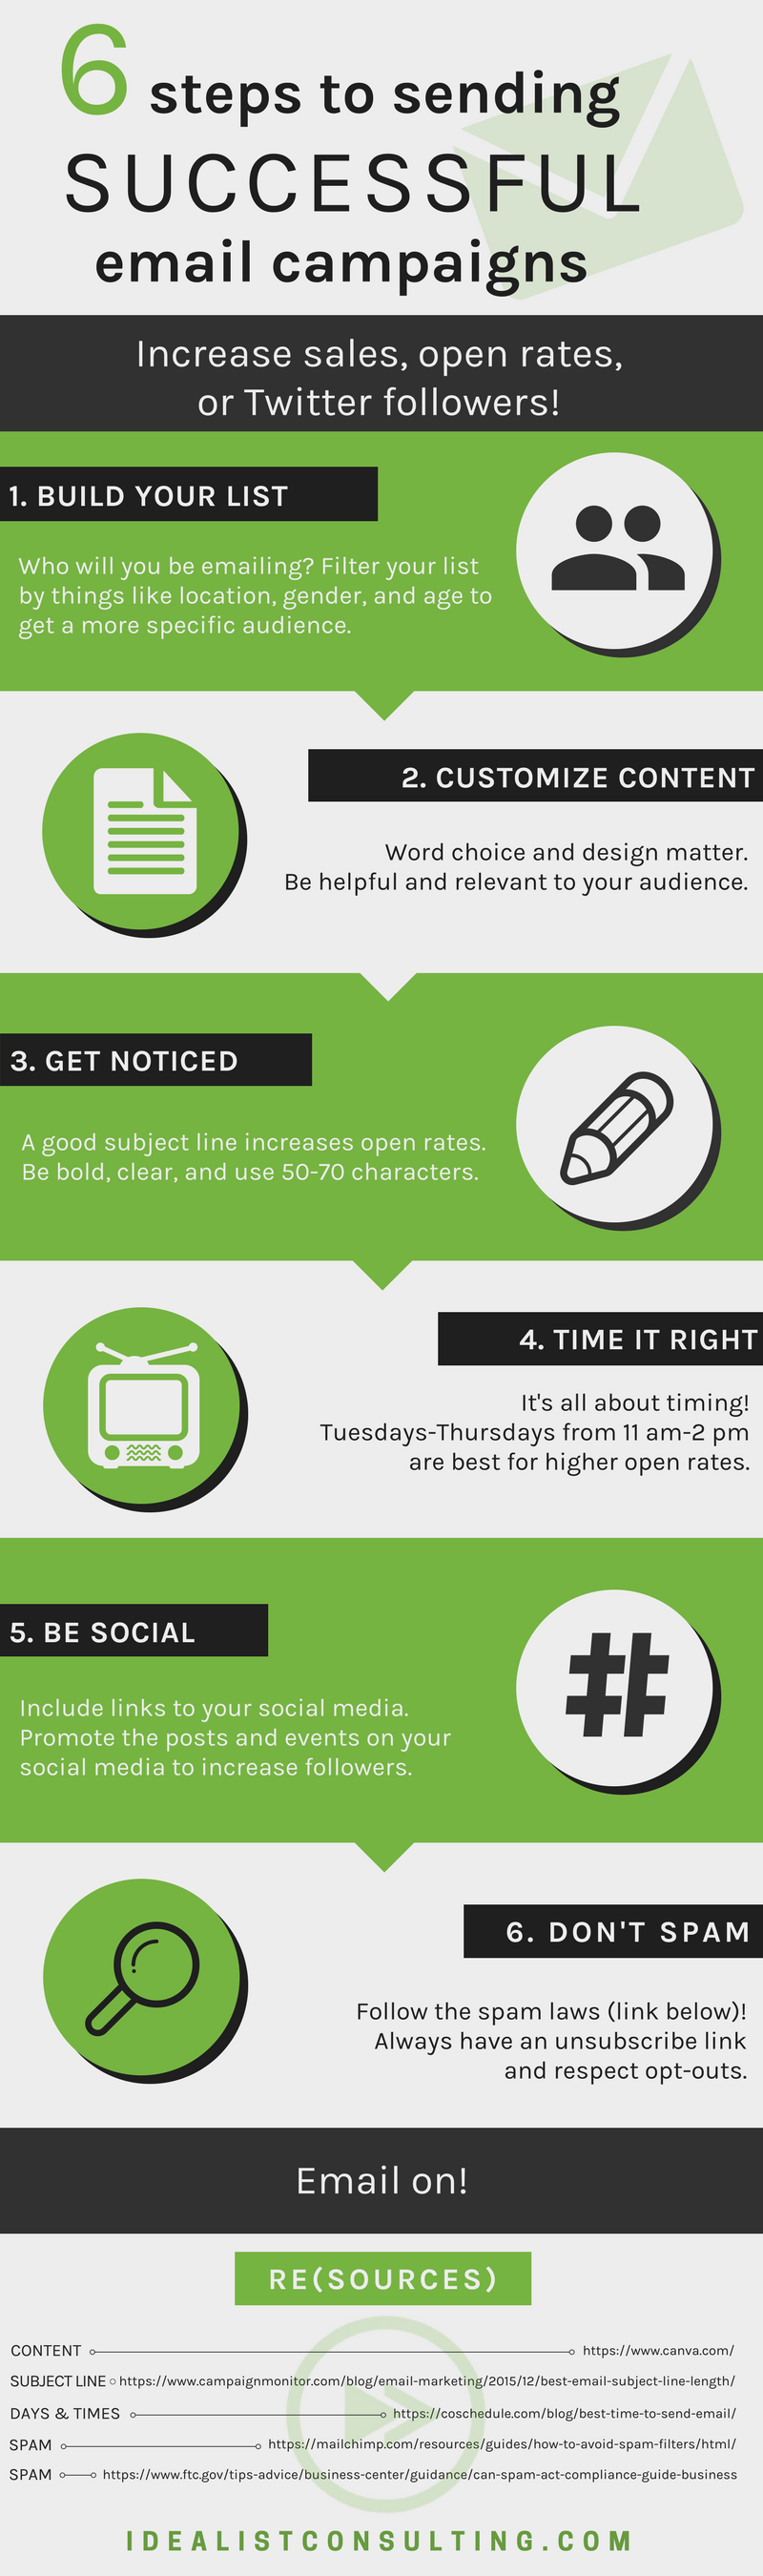 http://www.idealistconsulting.com/sites/default/files/6_tips_for_email_campaigns_infographic_2017.png